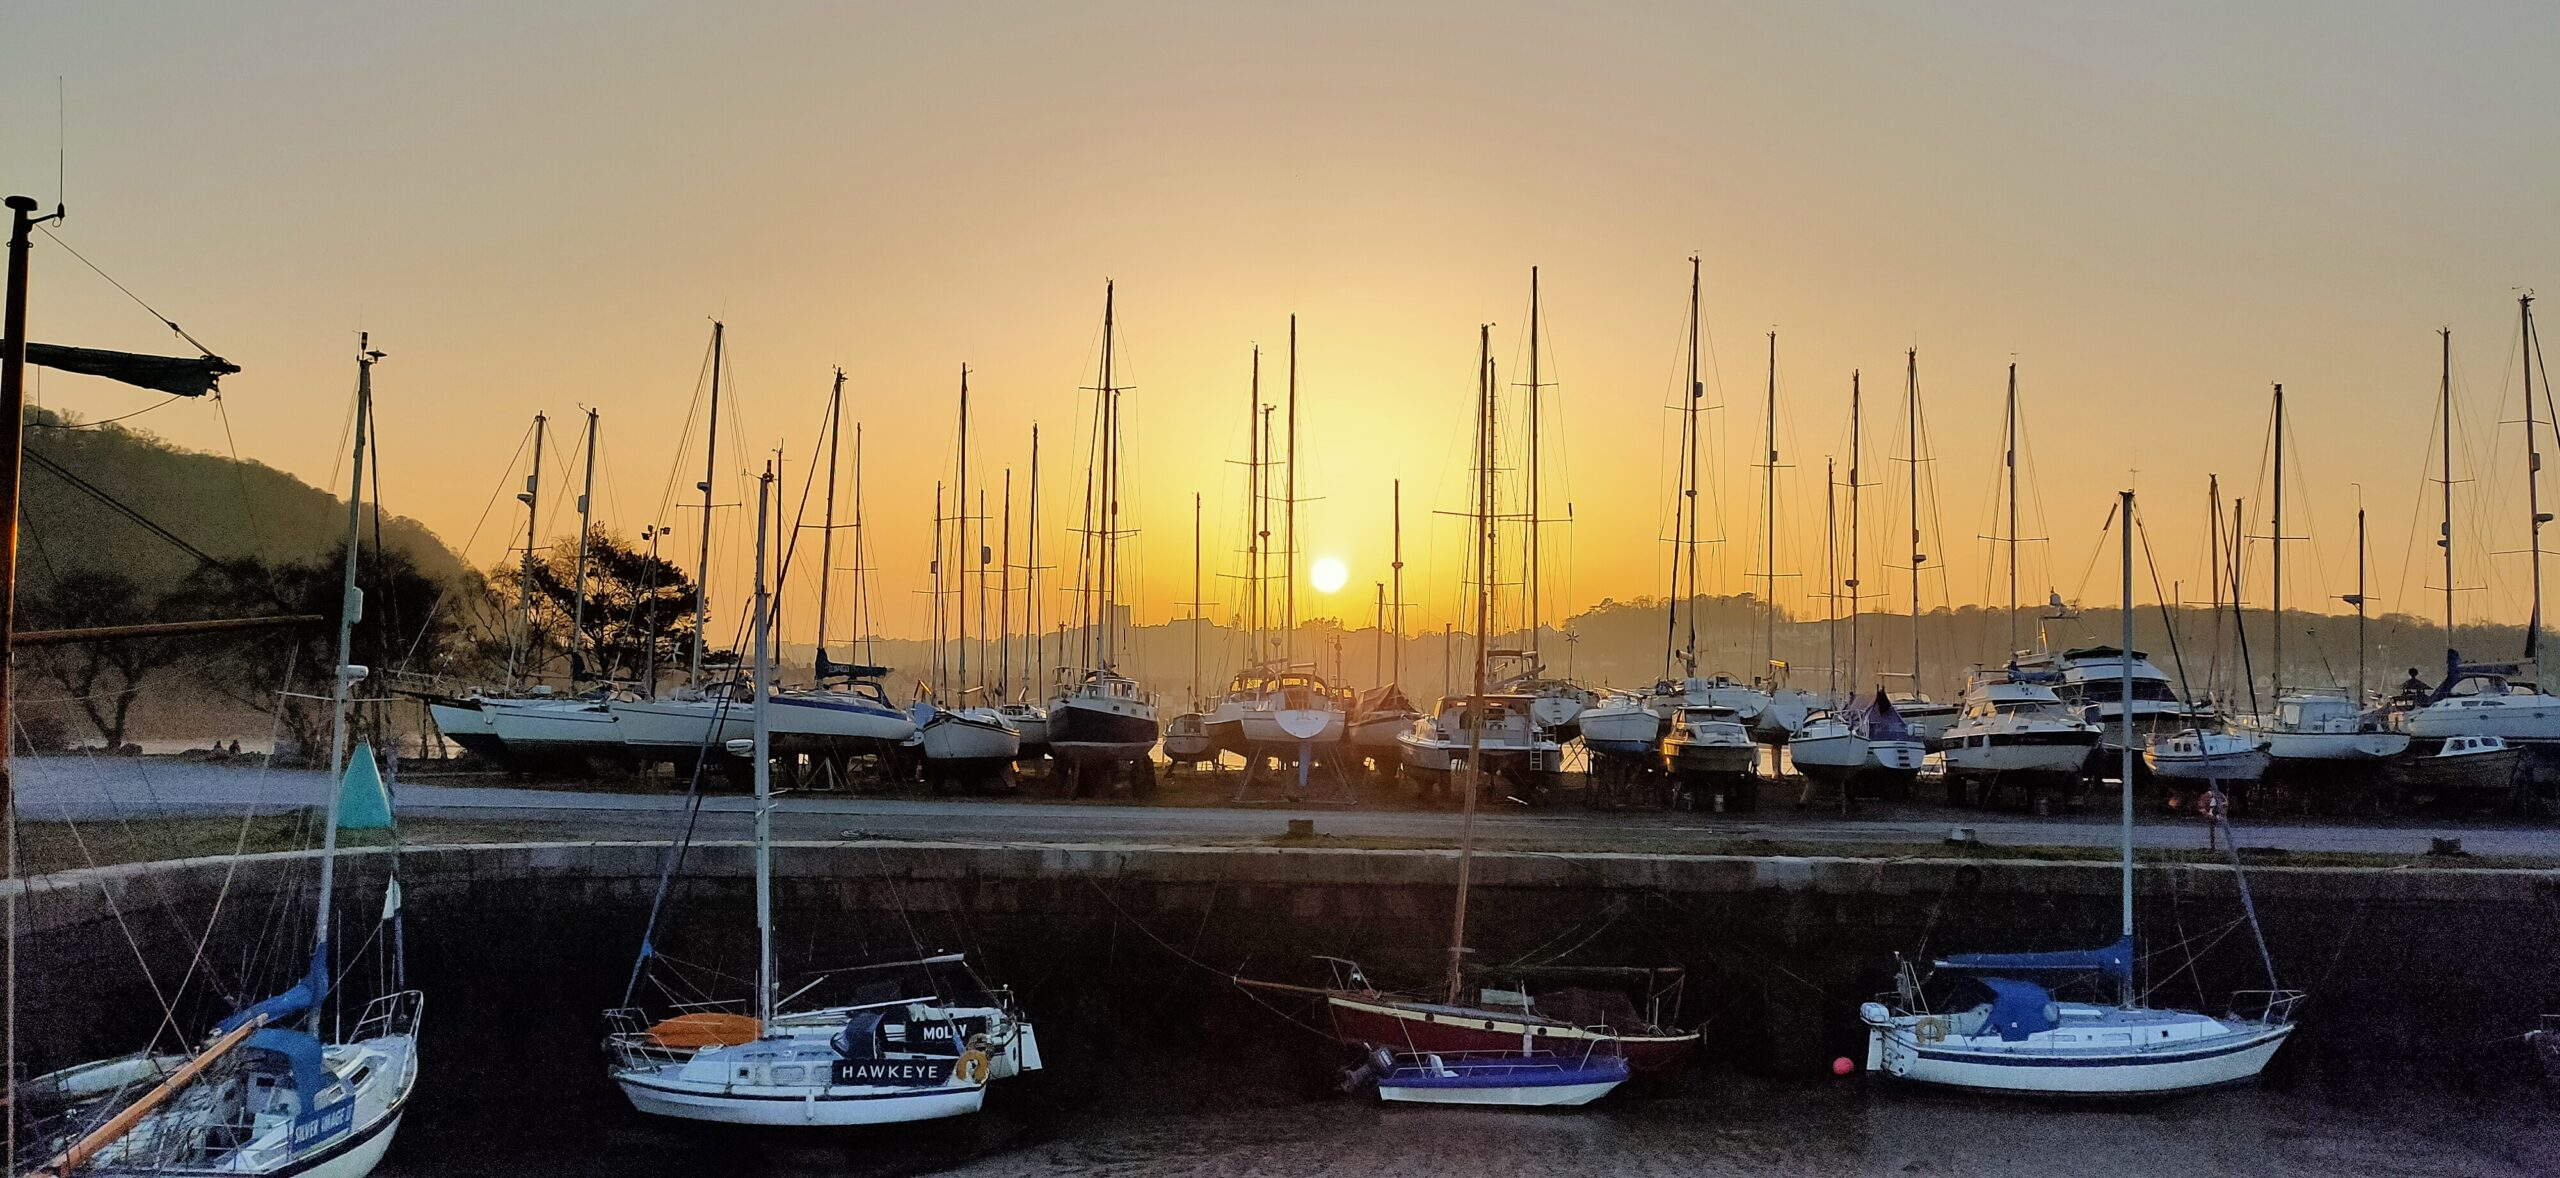 Sunset over the quayside with yachts